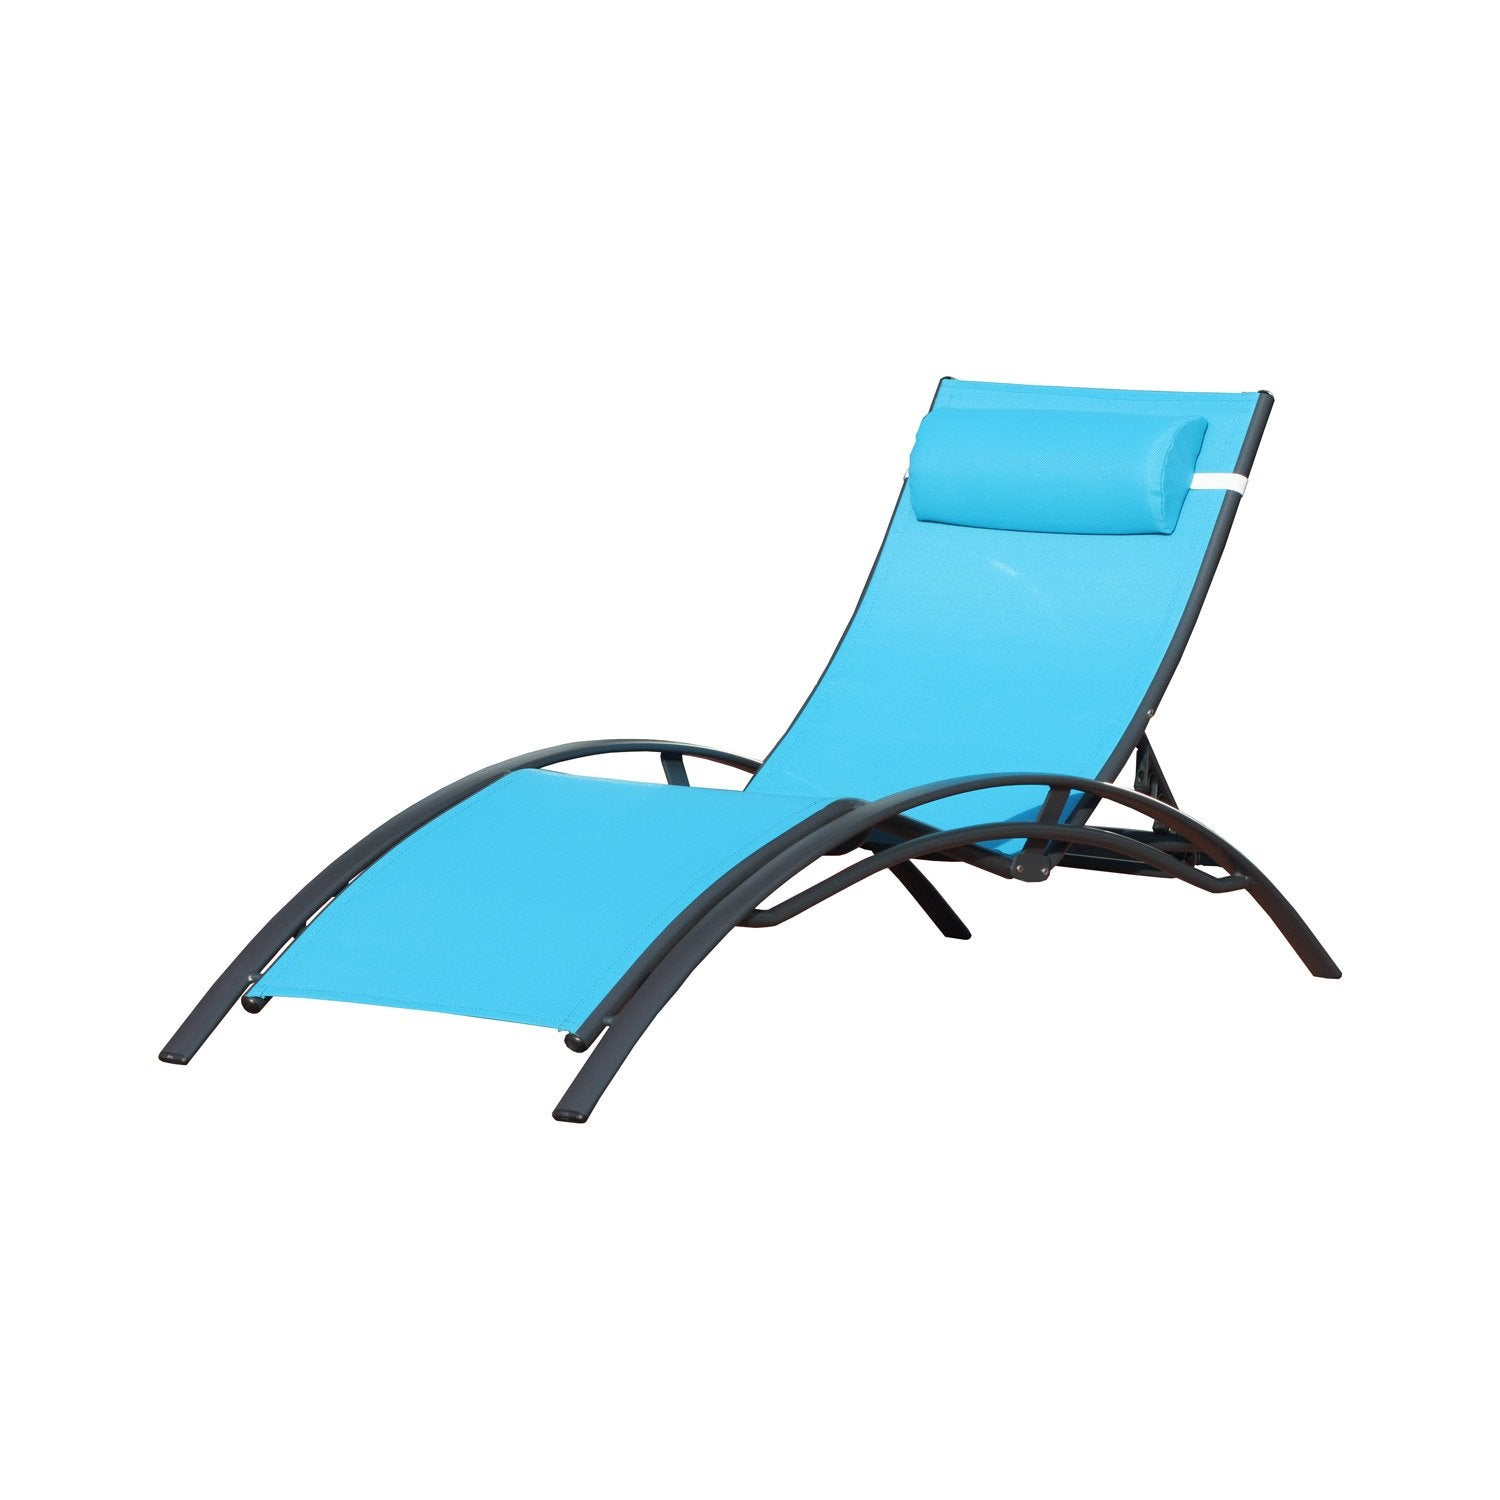 bain de soleil de jardin en aluminium turquoise leroy merlin. Black Bedroom Furniture Sets. Home Design Ideas